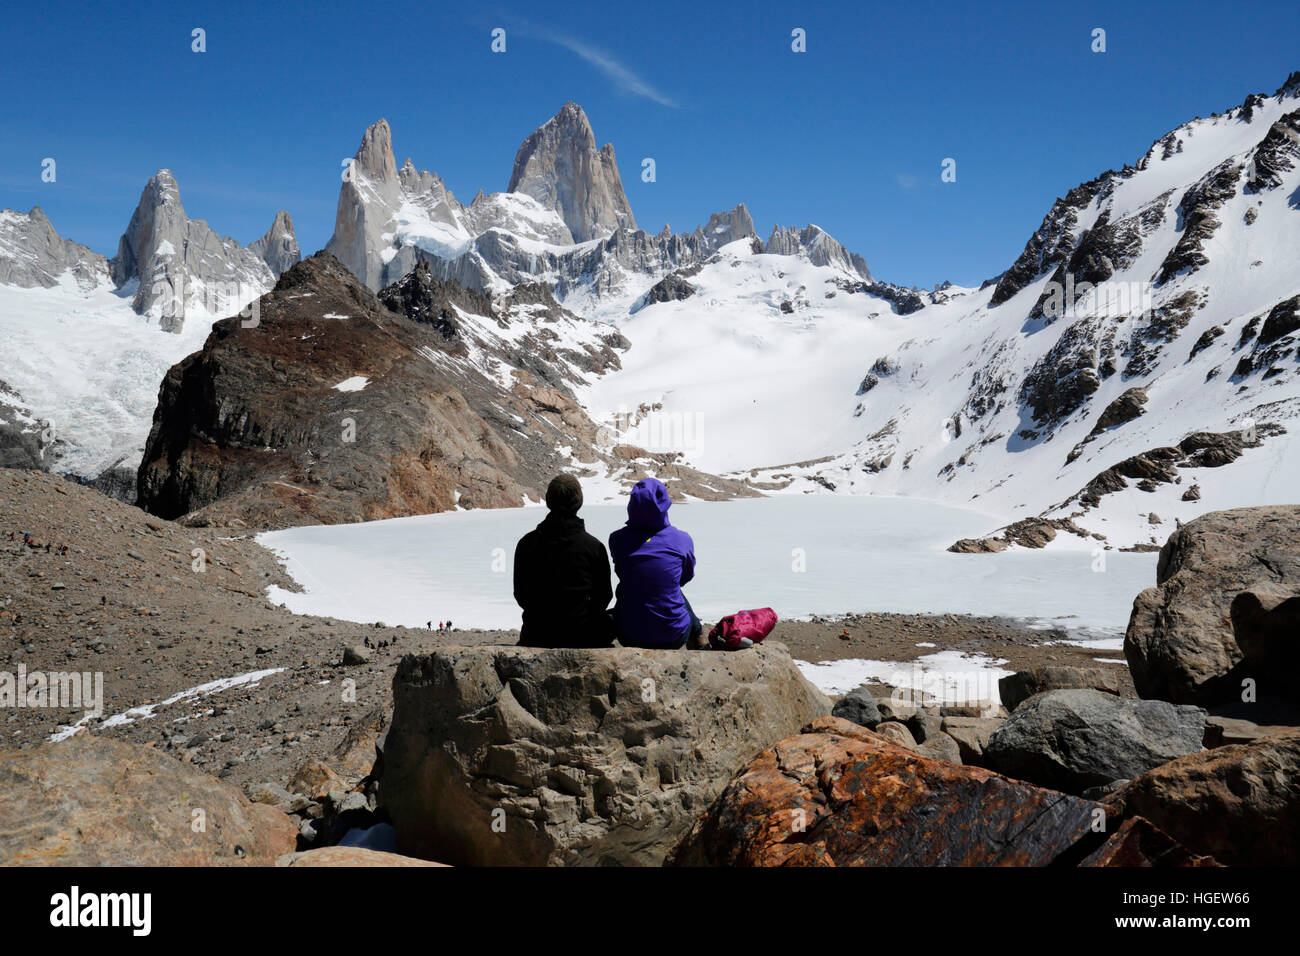 Hikers above Laguna de los Tres with view of Mount Fitz Roy, El Chalten, Patagonia, Argentina, South America - Stock Image